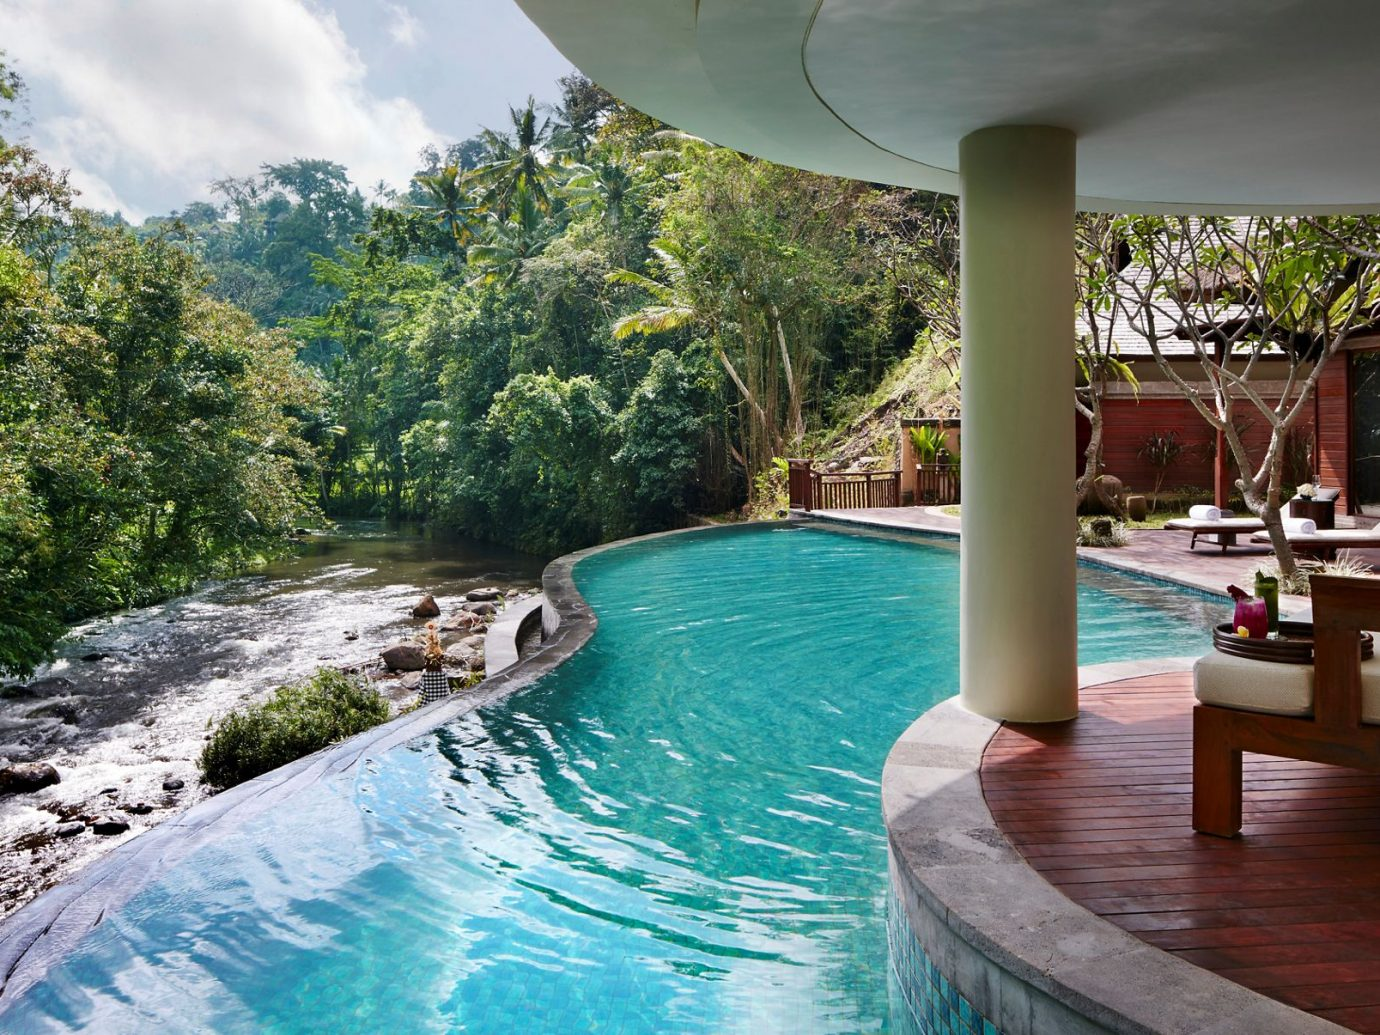 Reserve Two-bedroom Pool Villa at Mandapa, a Ritz Carlton Reserve